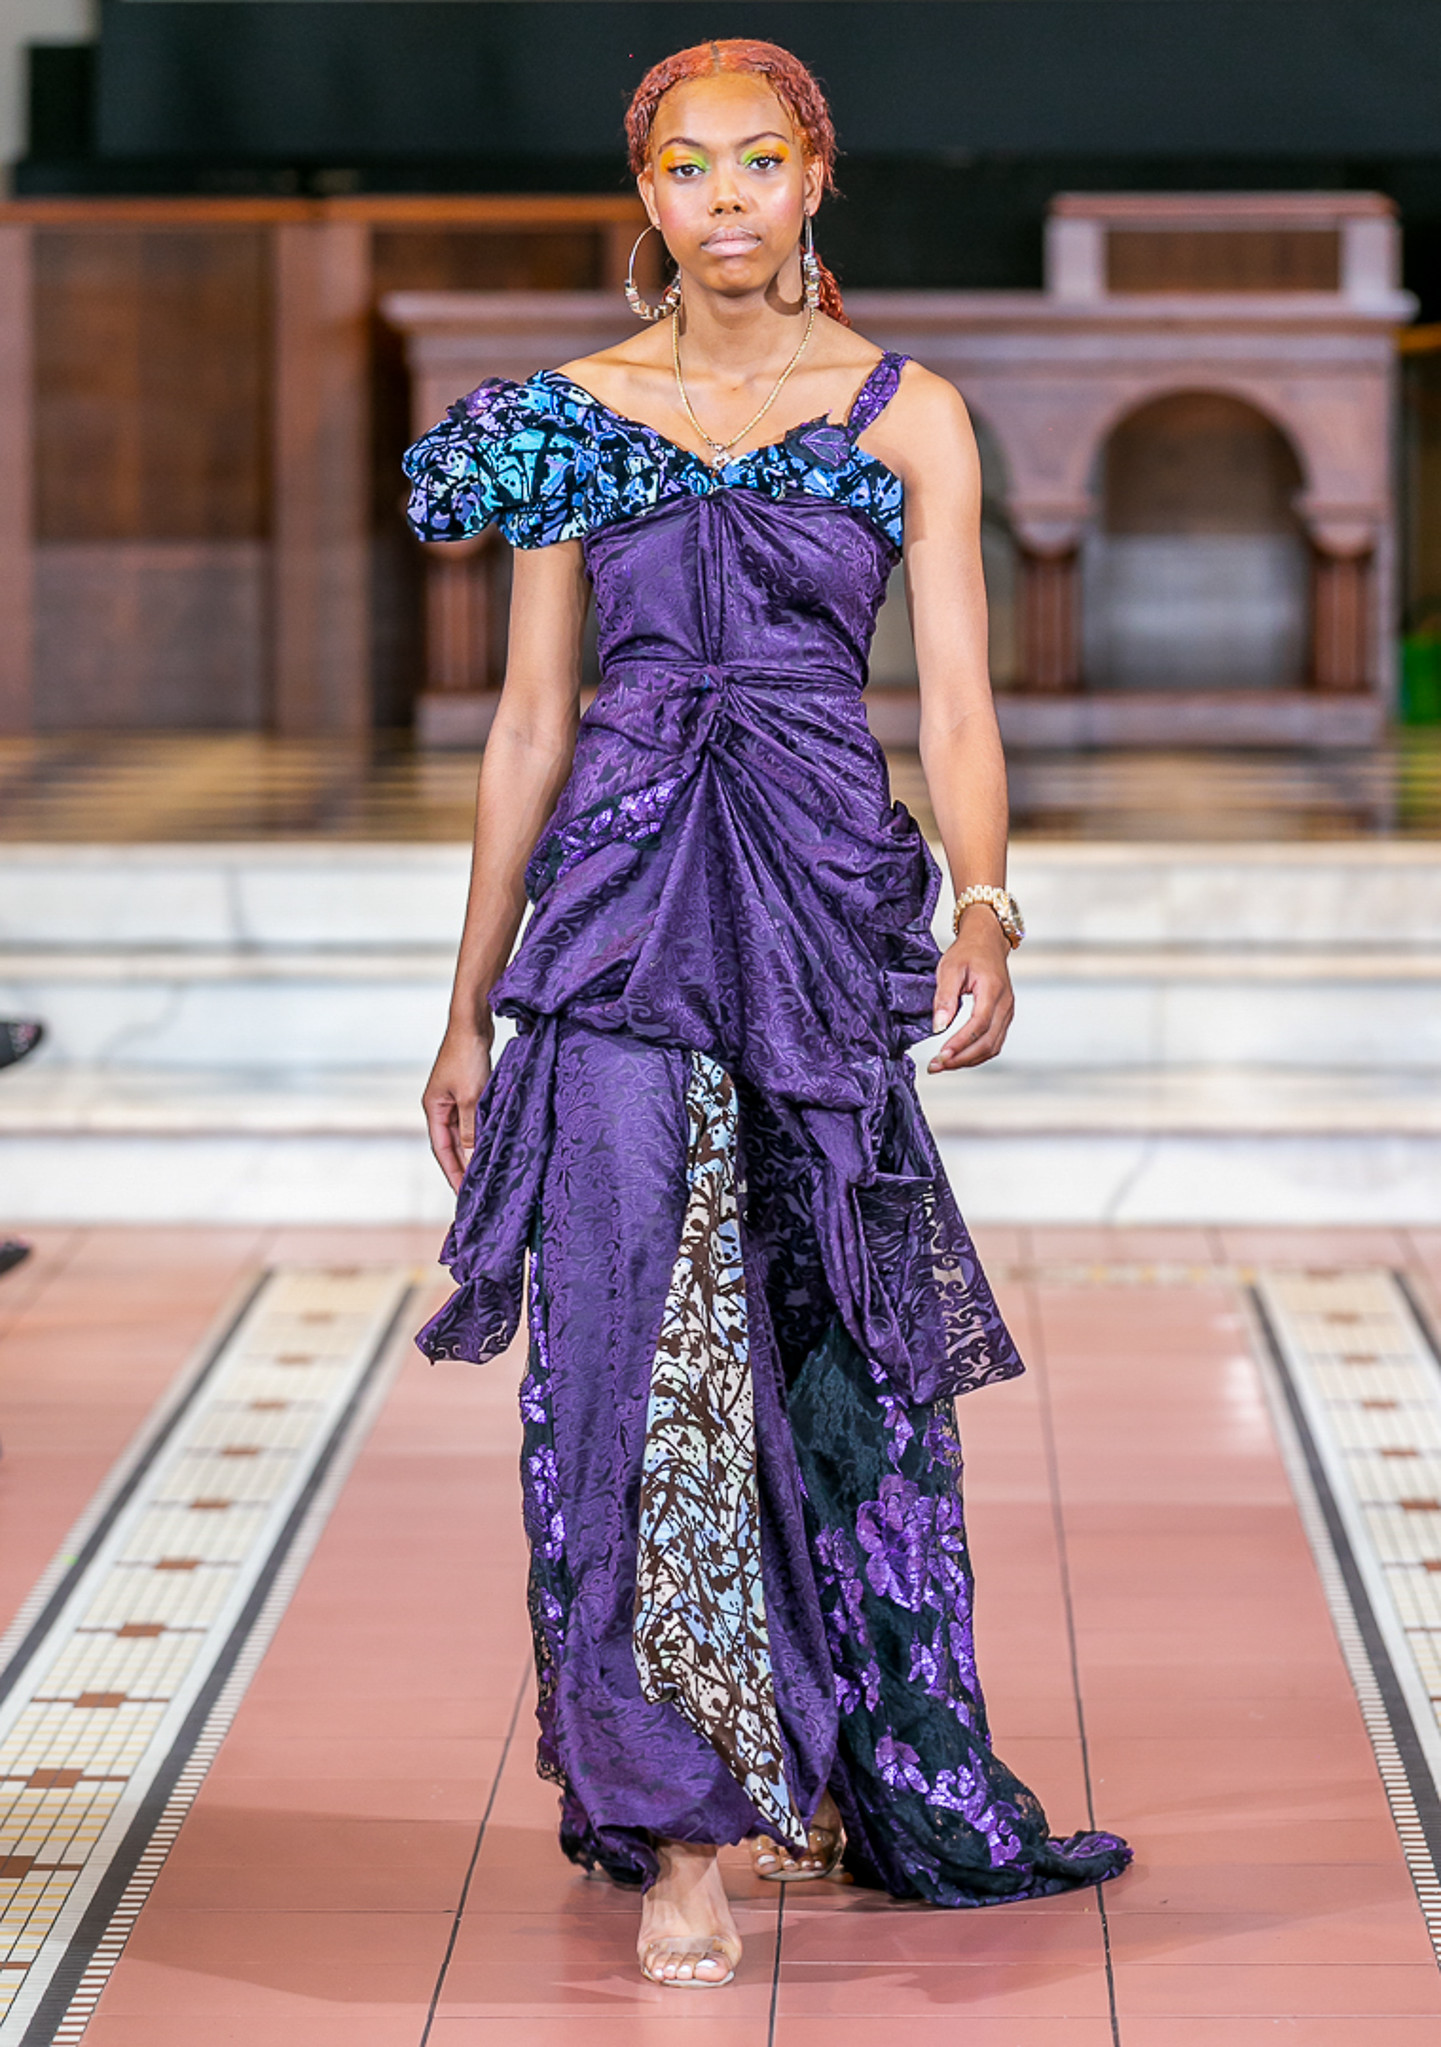 corey-rogers-gowns-fashion-sizzle-2019